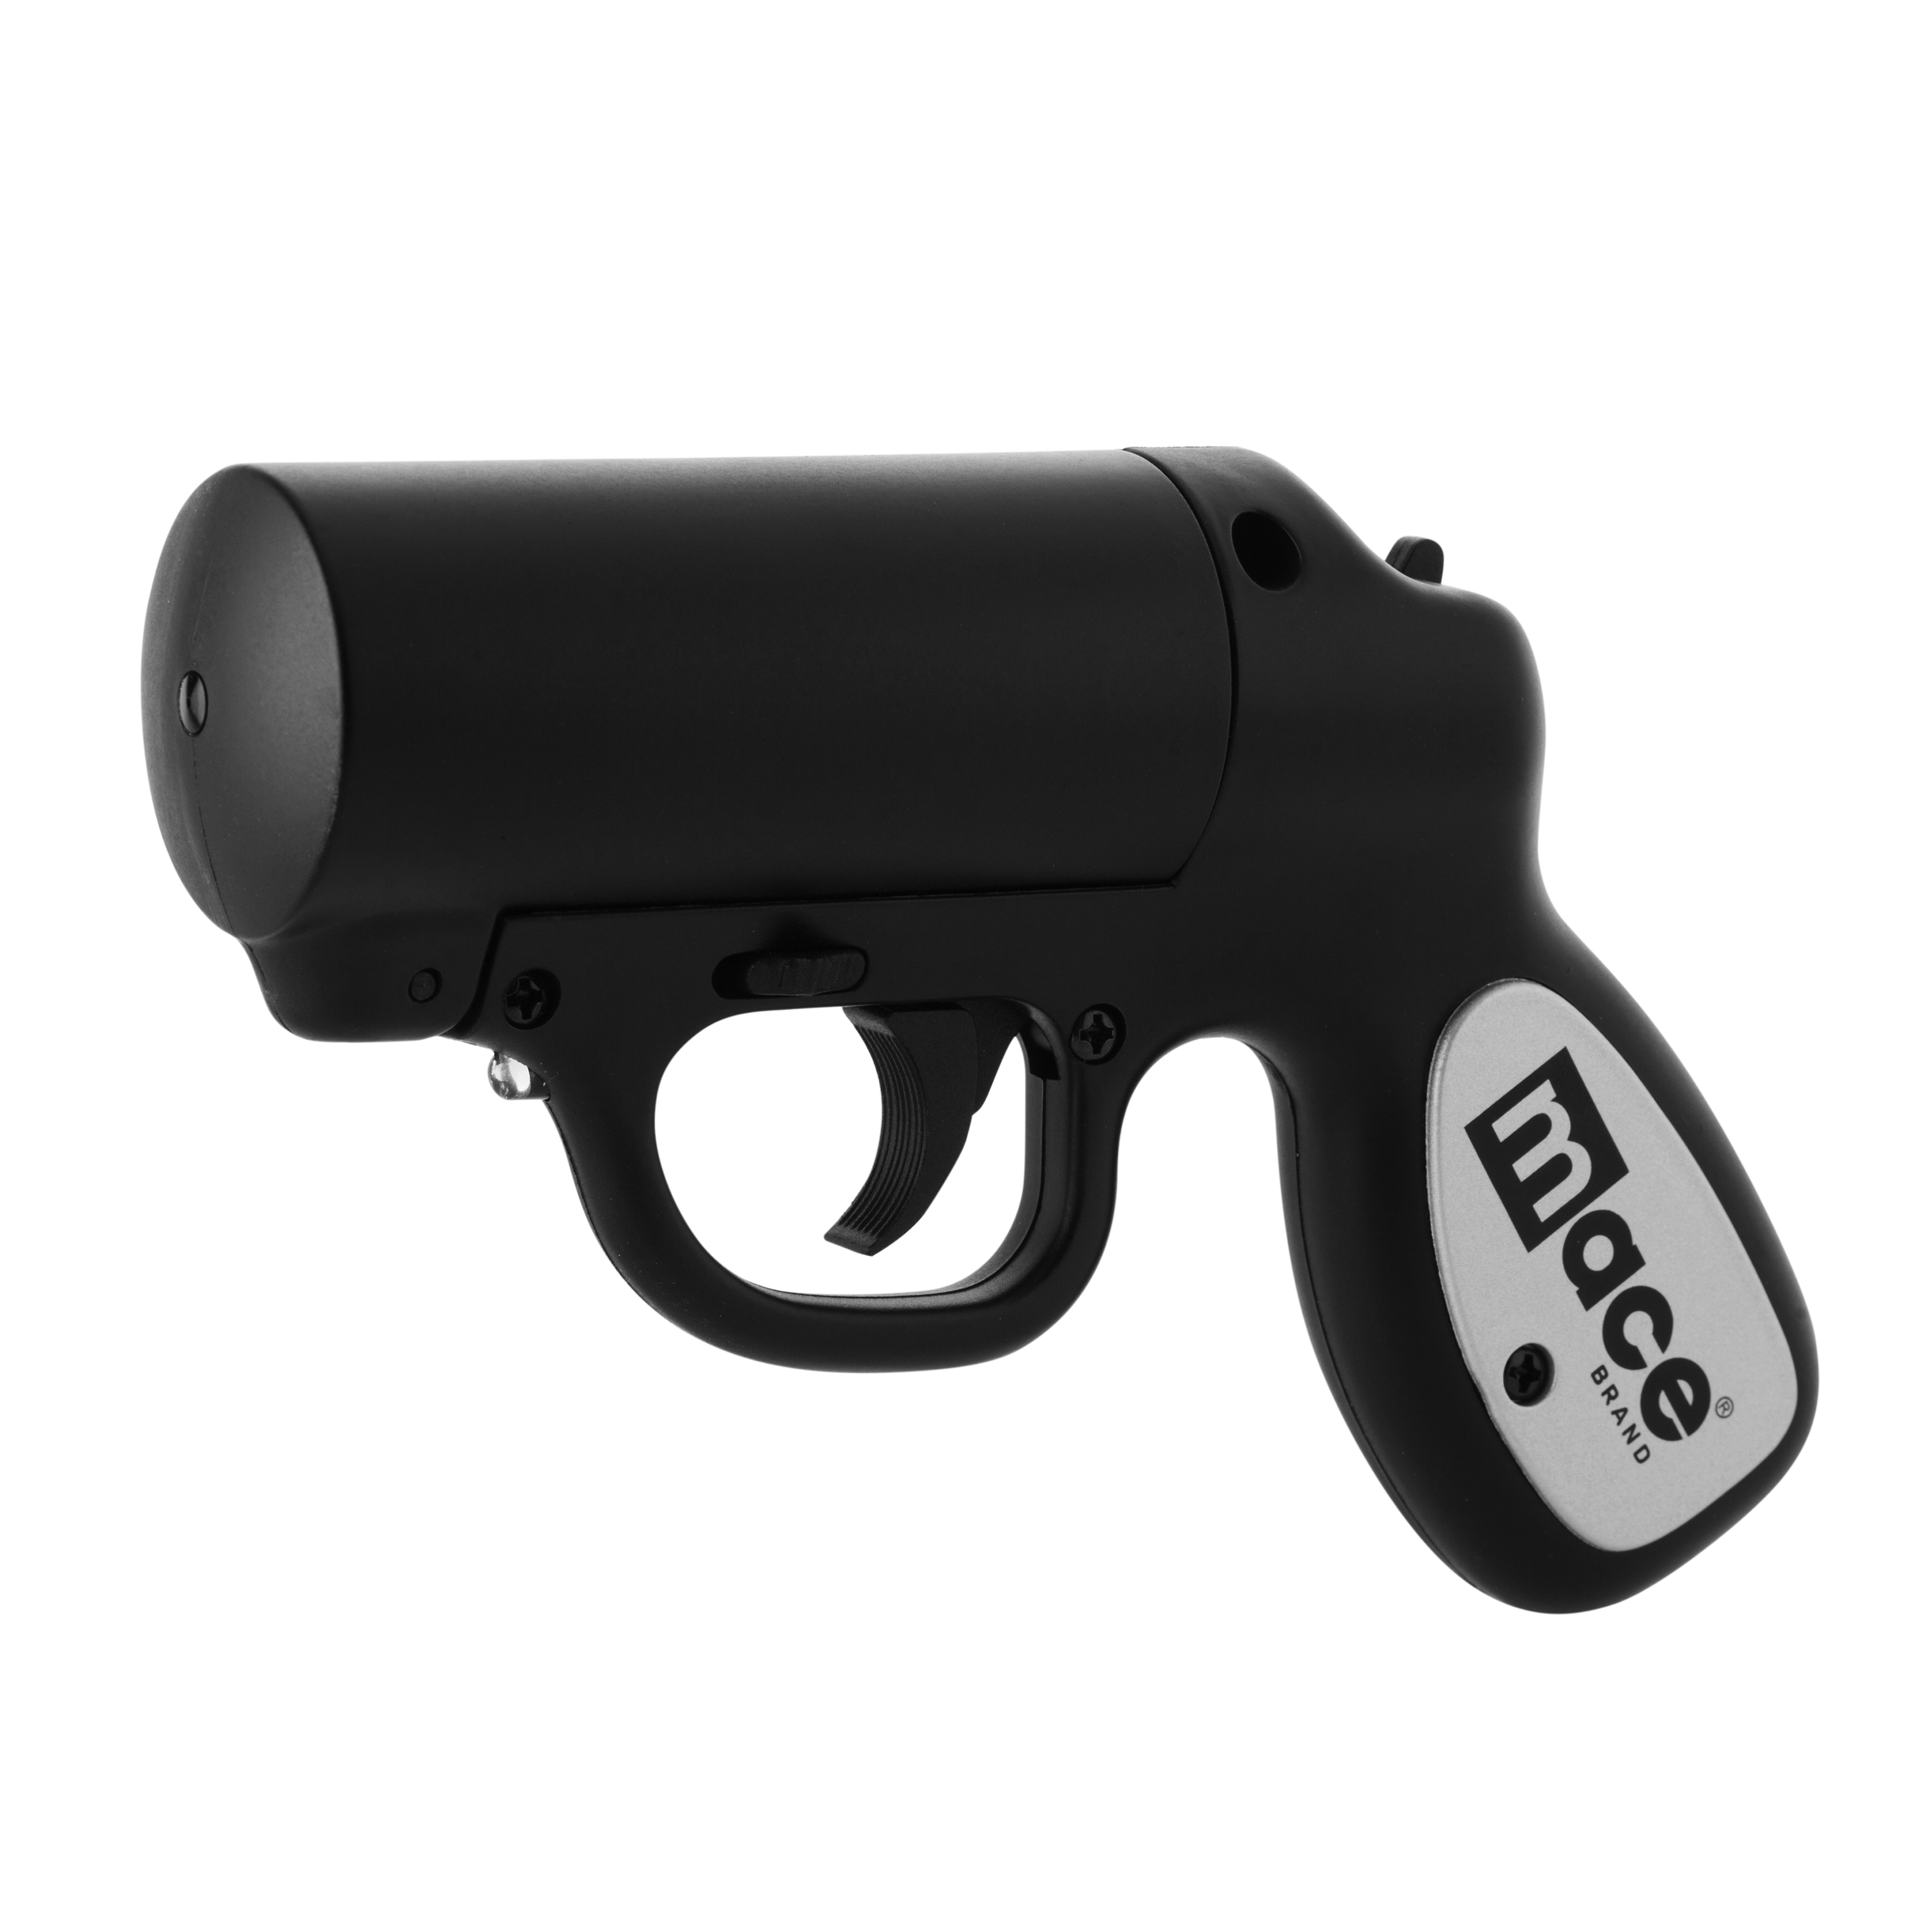 Mace Brand Pepper Gun Pepper Spray, Black with Strobe LED